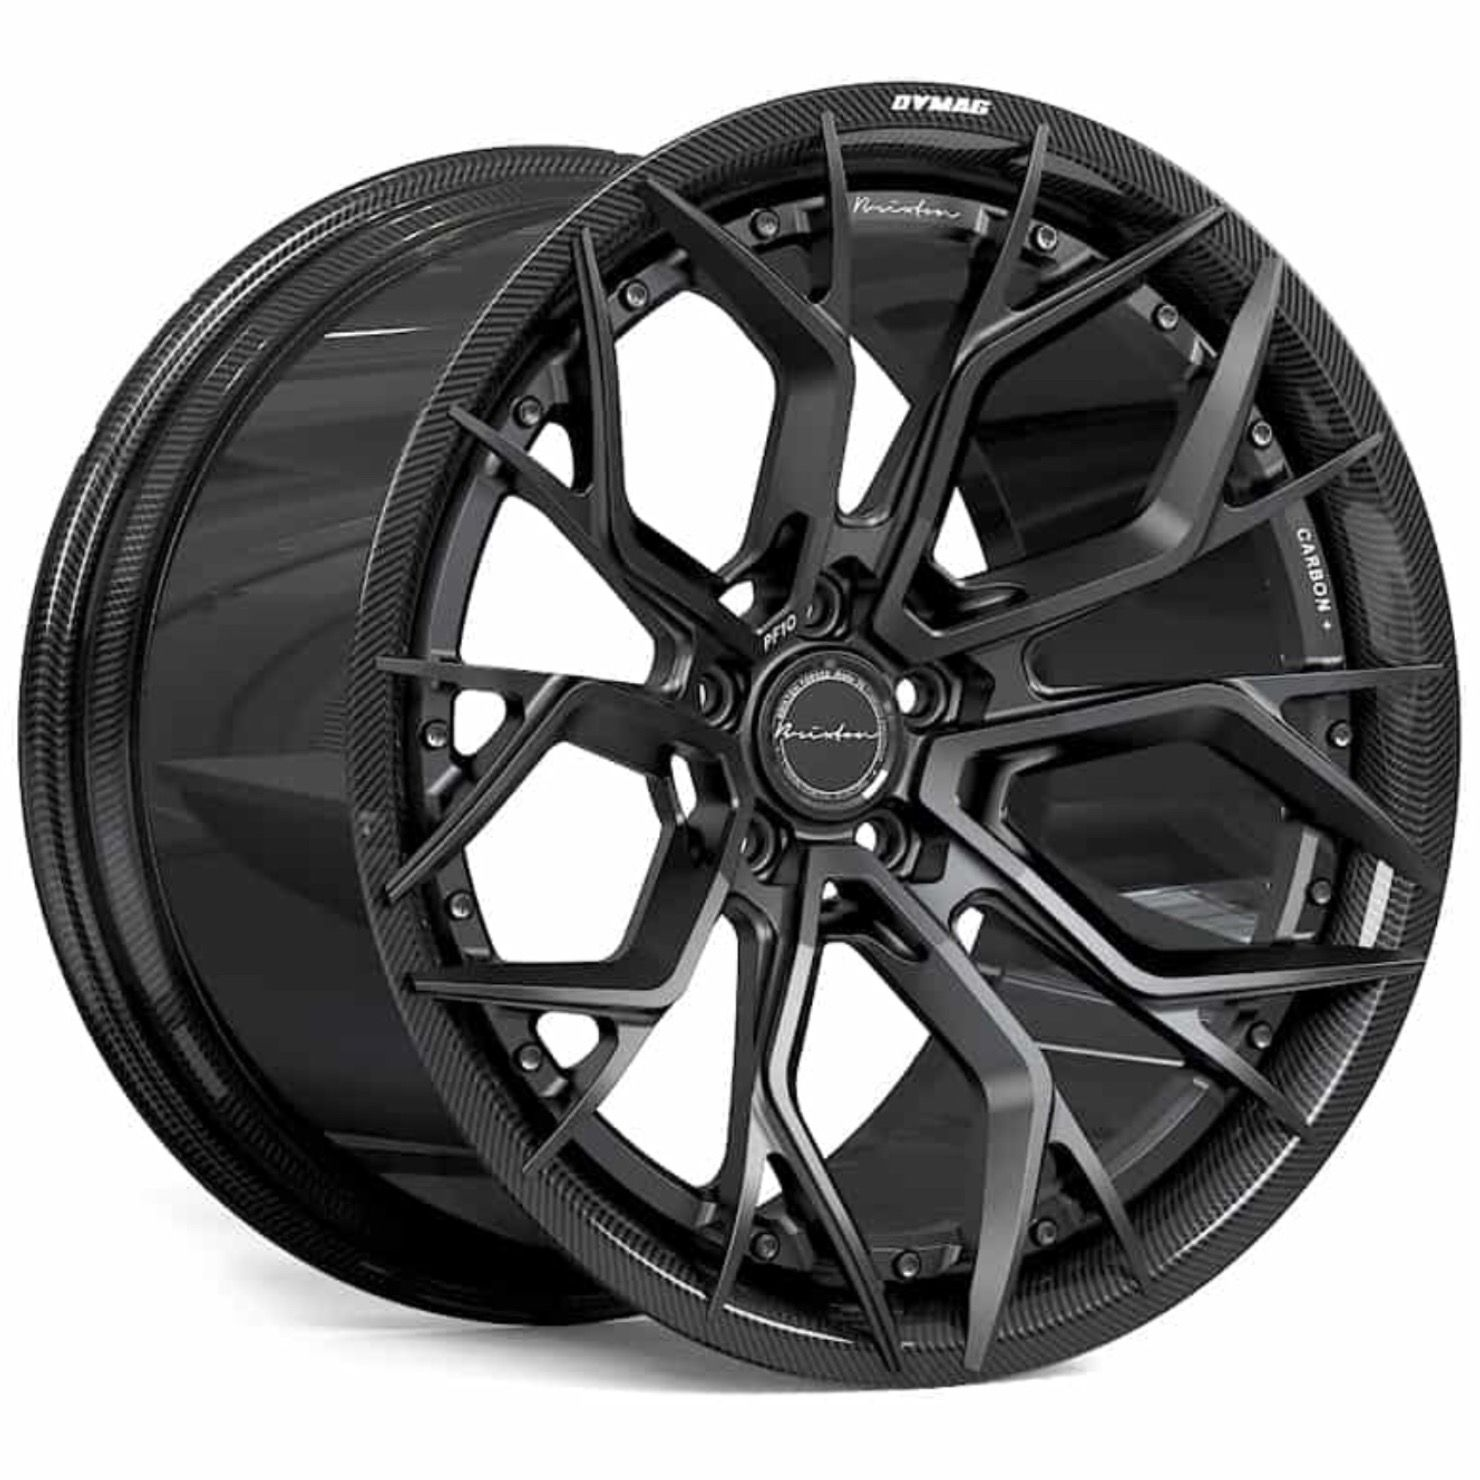 20 21 Brixton Forged Super Cars Forging Forged Wheels